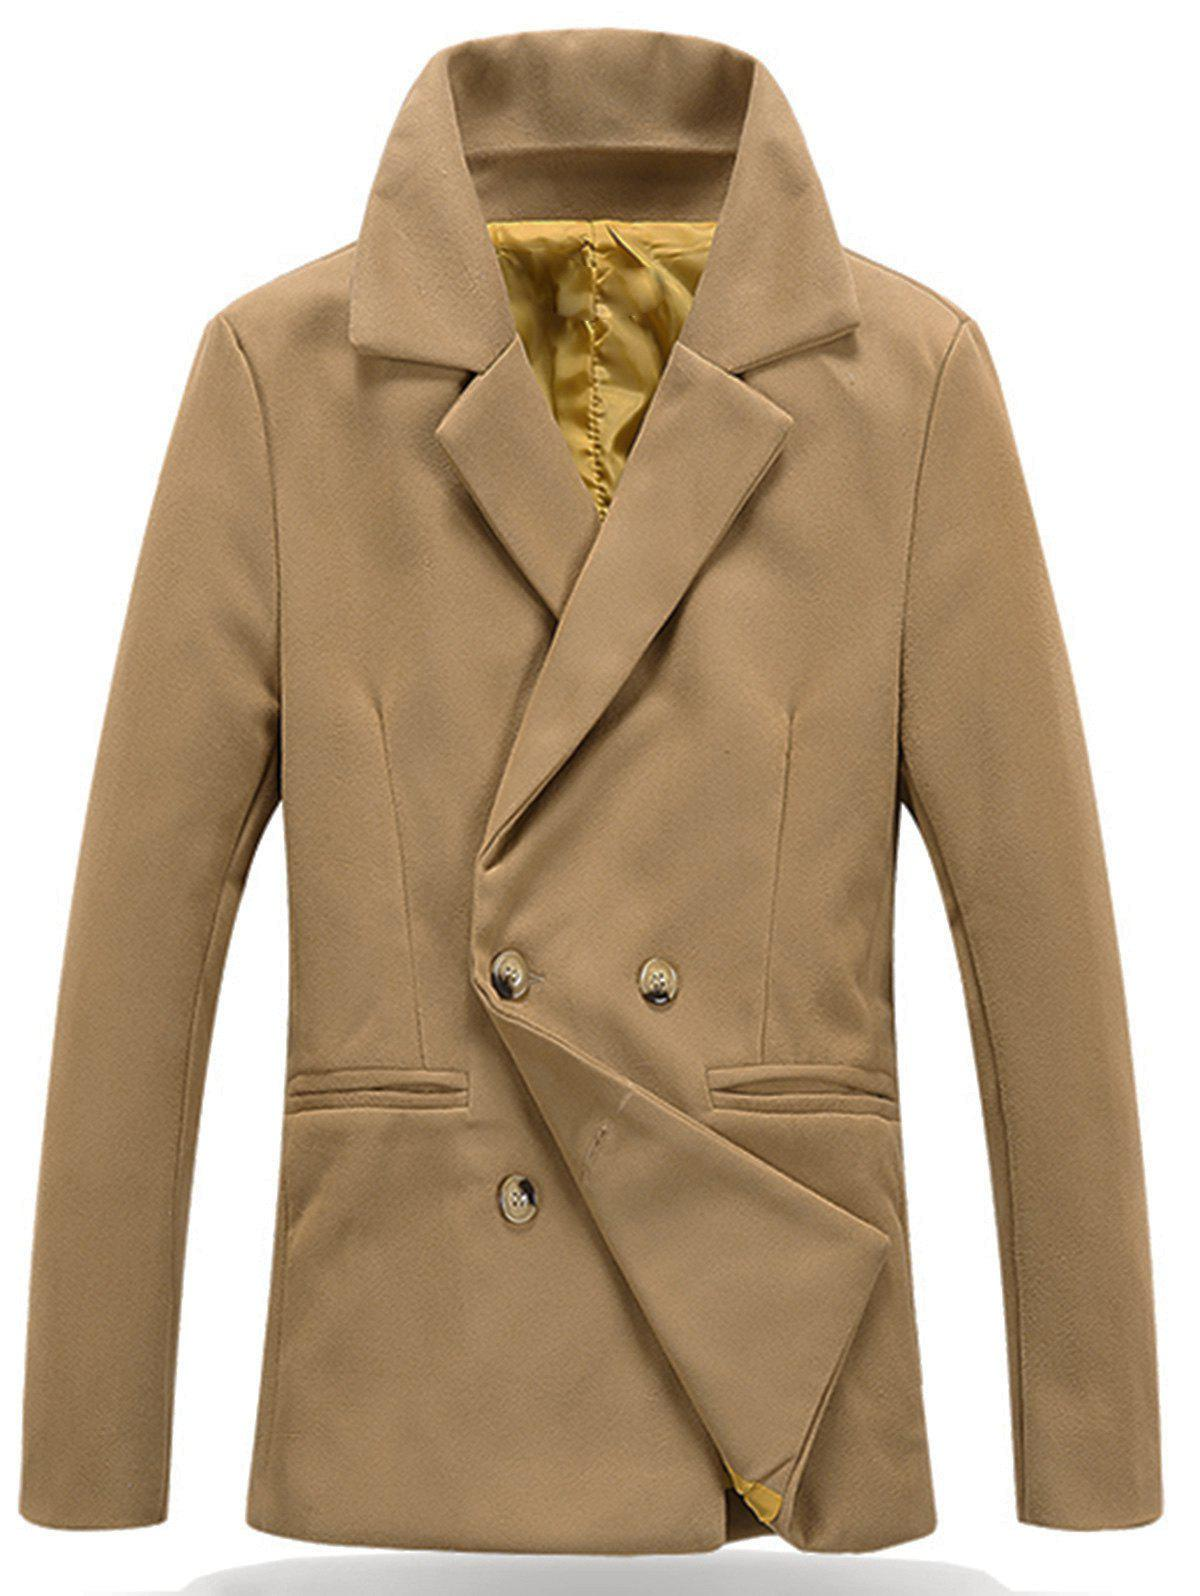 Notch Lapel Button Cuff Peacoat Jacket - KHAKI 3XL